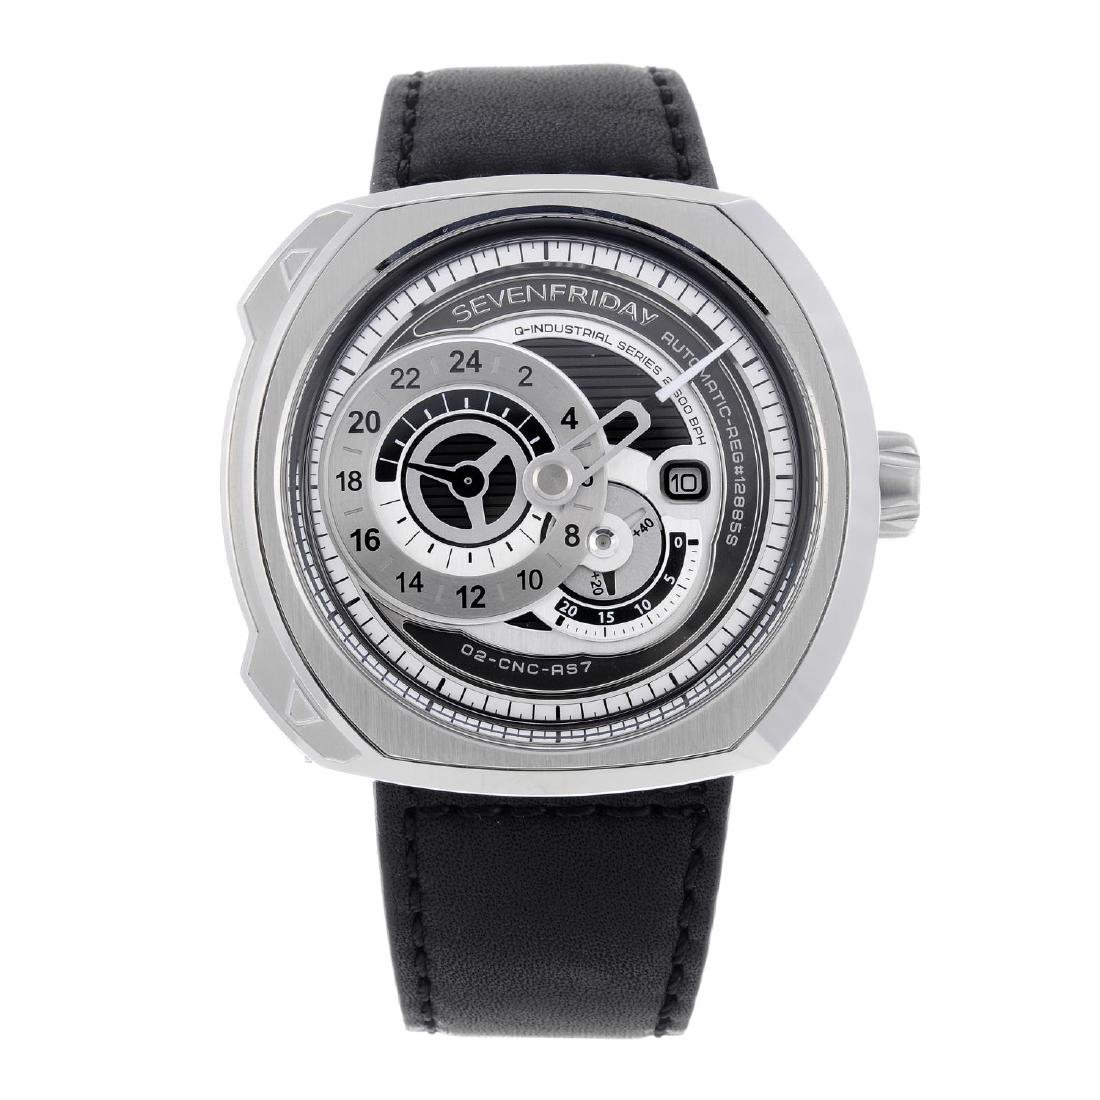 SEVENFRIDAY - a gentleman's Q1/01 wrist watch.